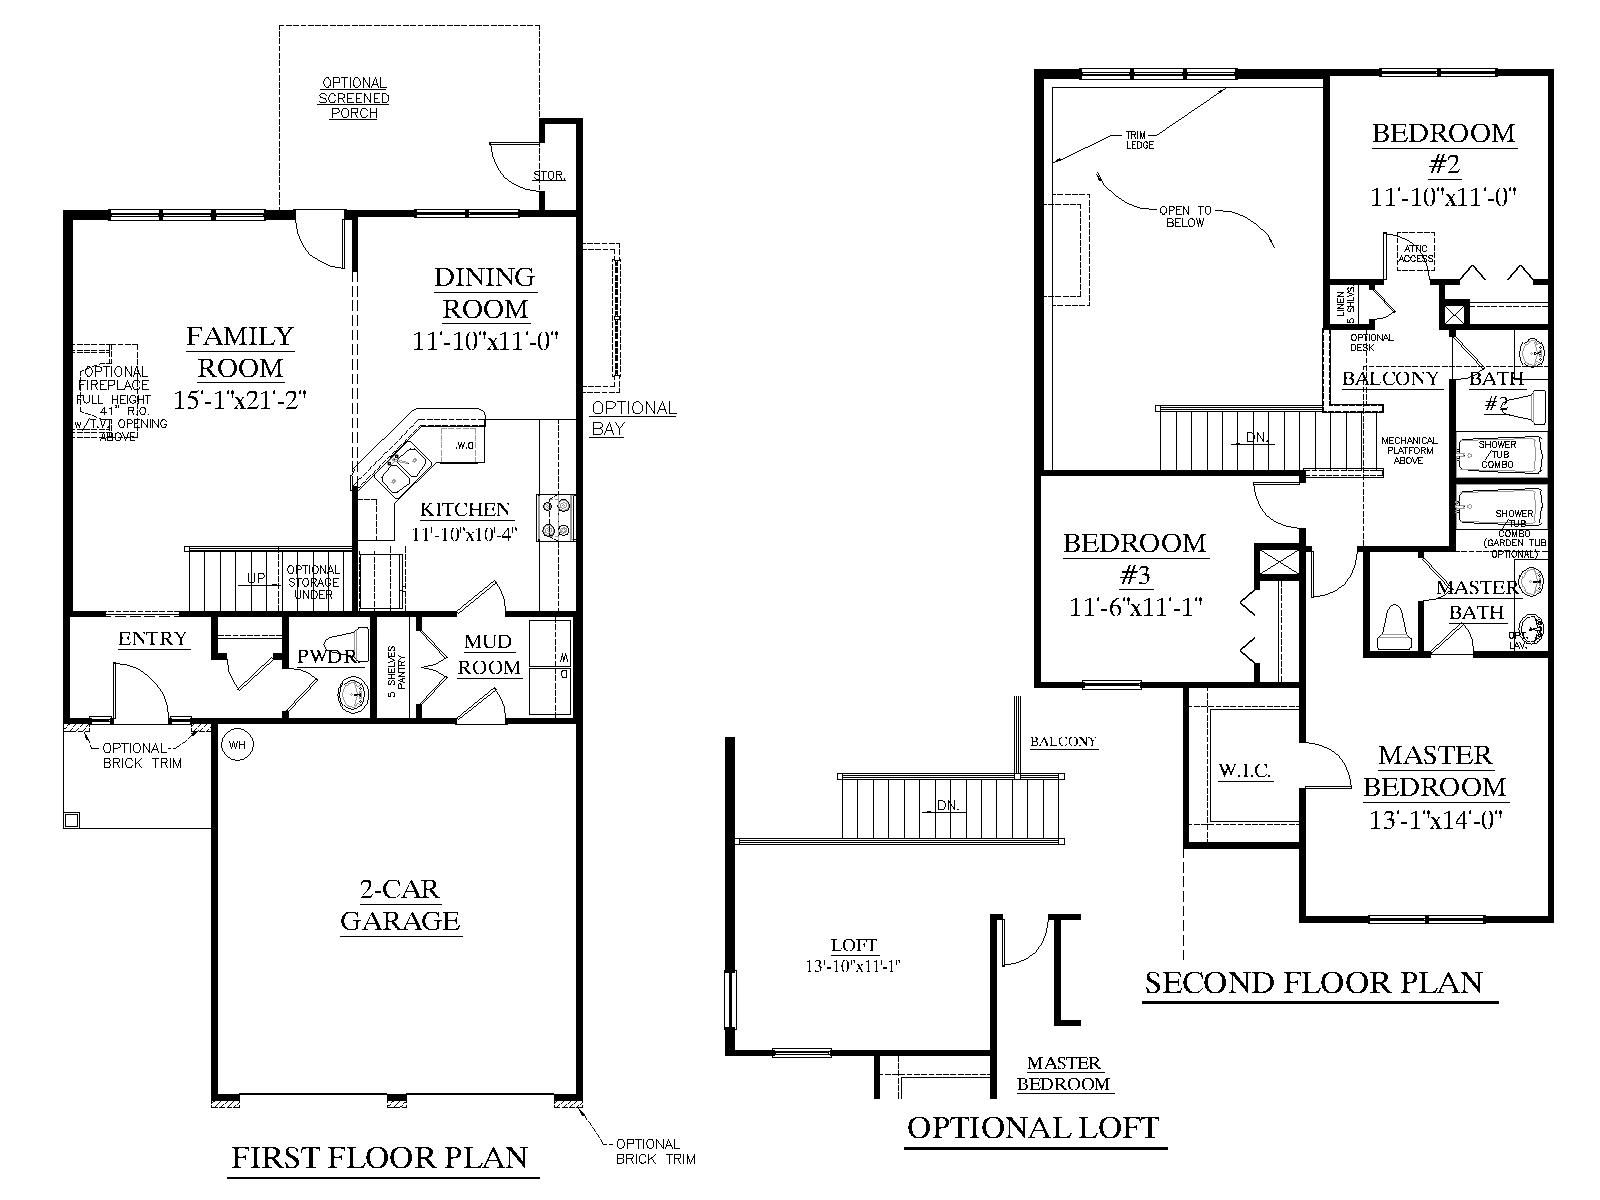 House Plan 1600 Walterboro floor plan 1600 Square Feet